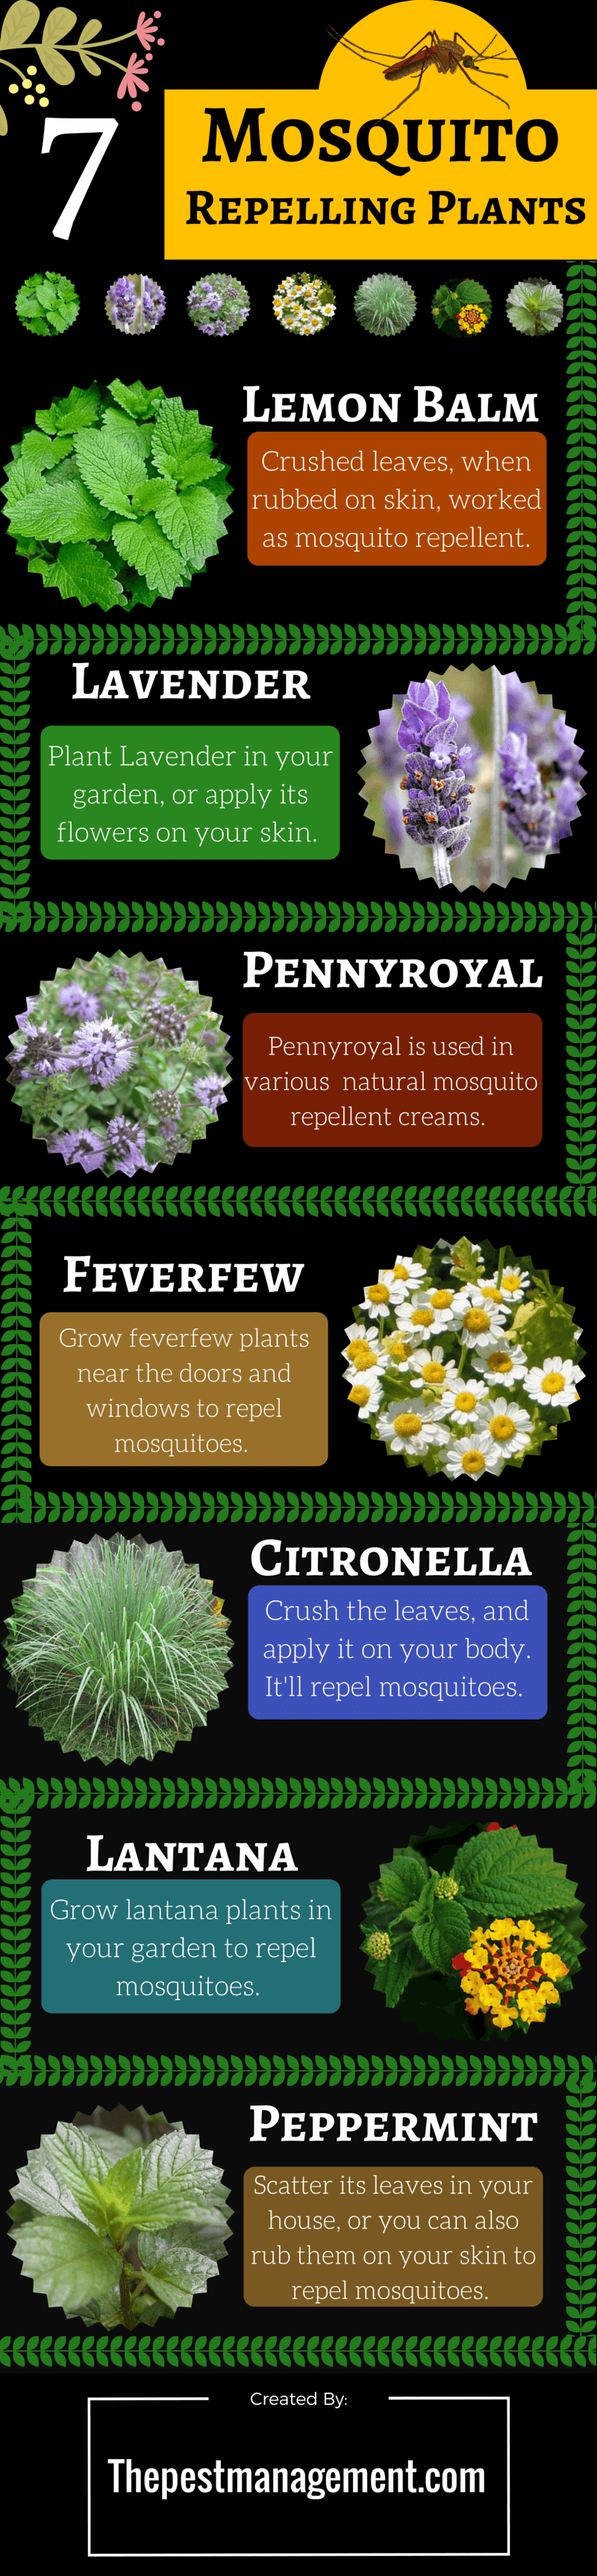 Plants-that-repel-mosquitoes-infographic-plaza